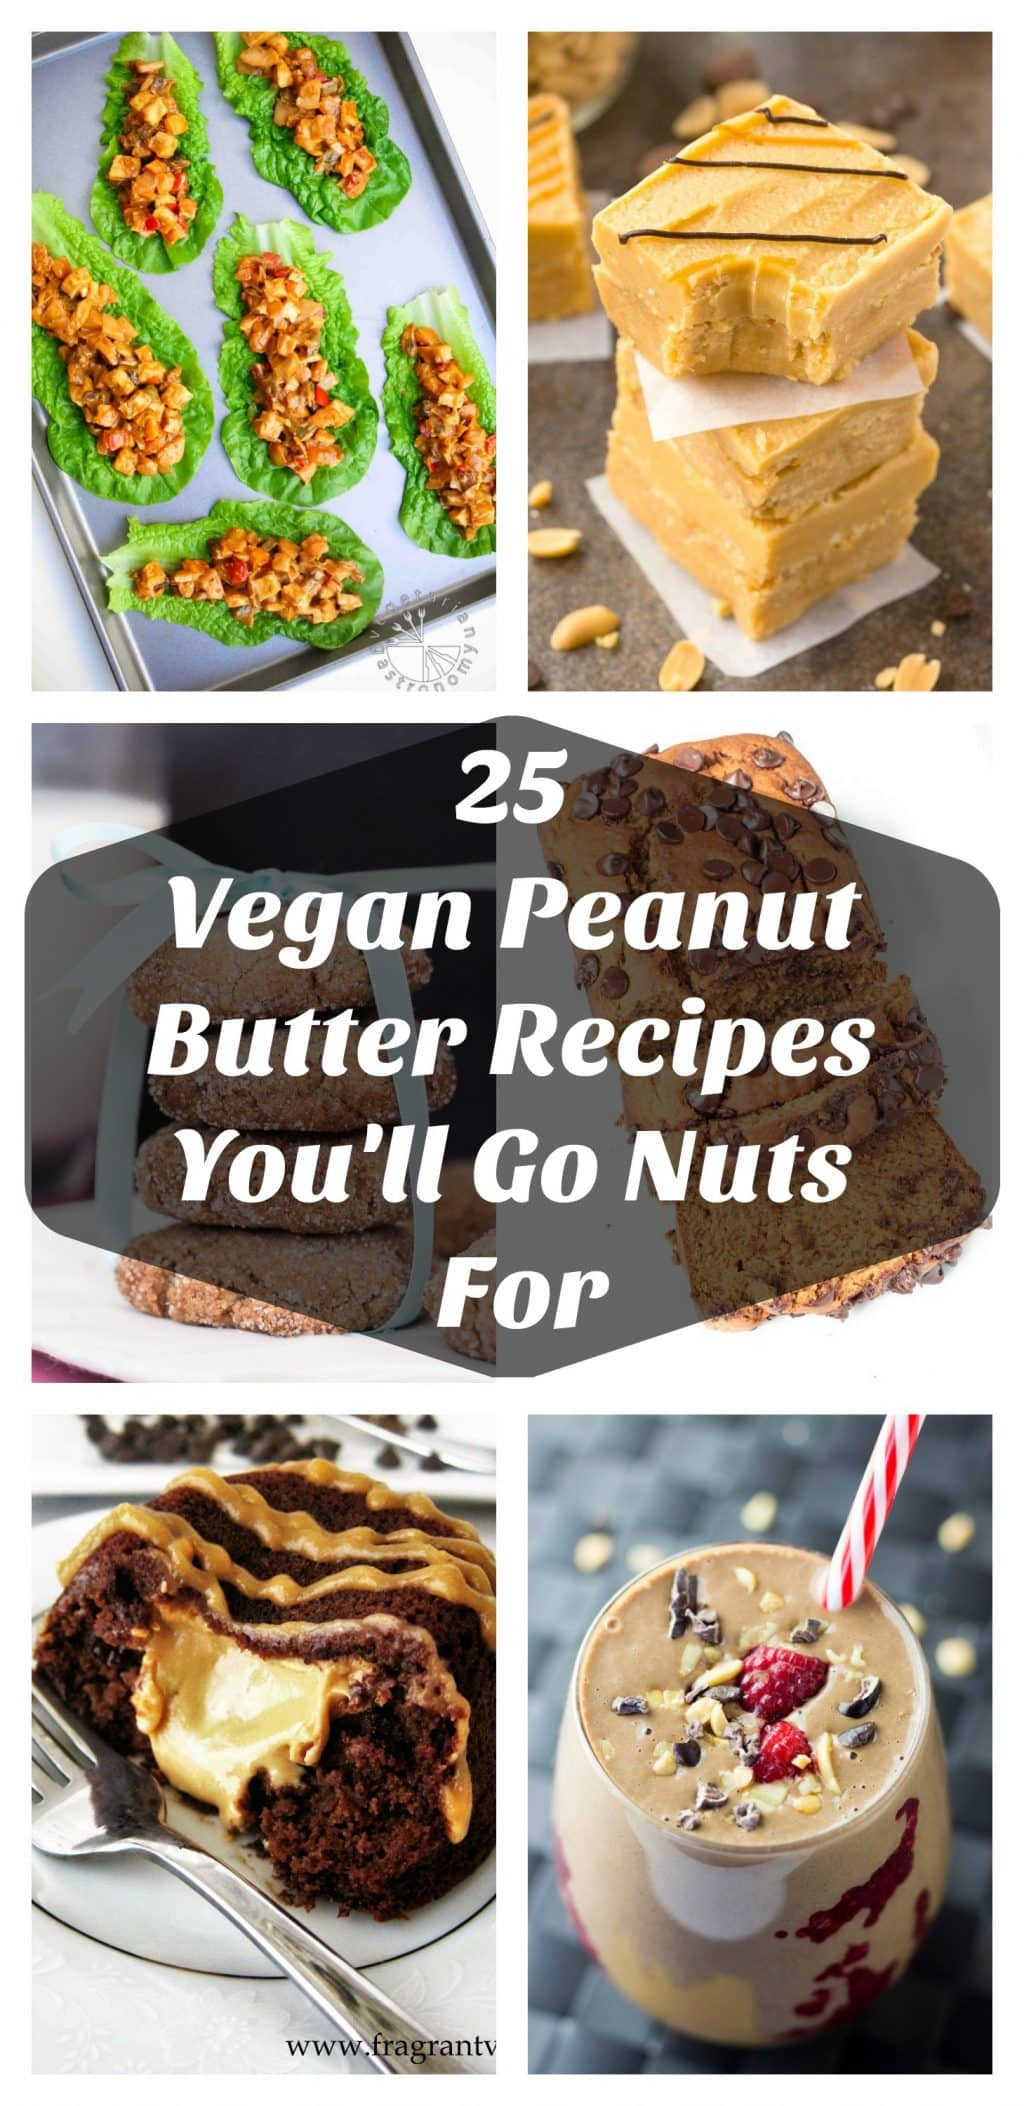 It's National Peanut Butter Month so go nuts and make some of these awesome vegan peanut butter recipes!